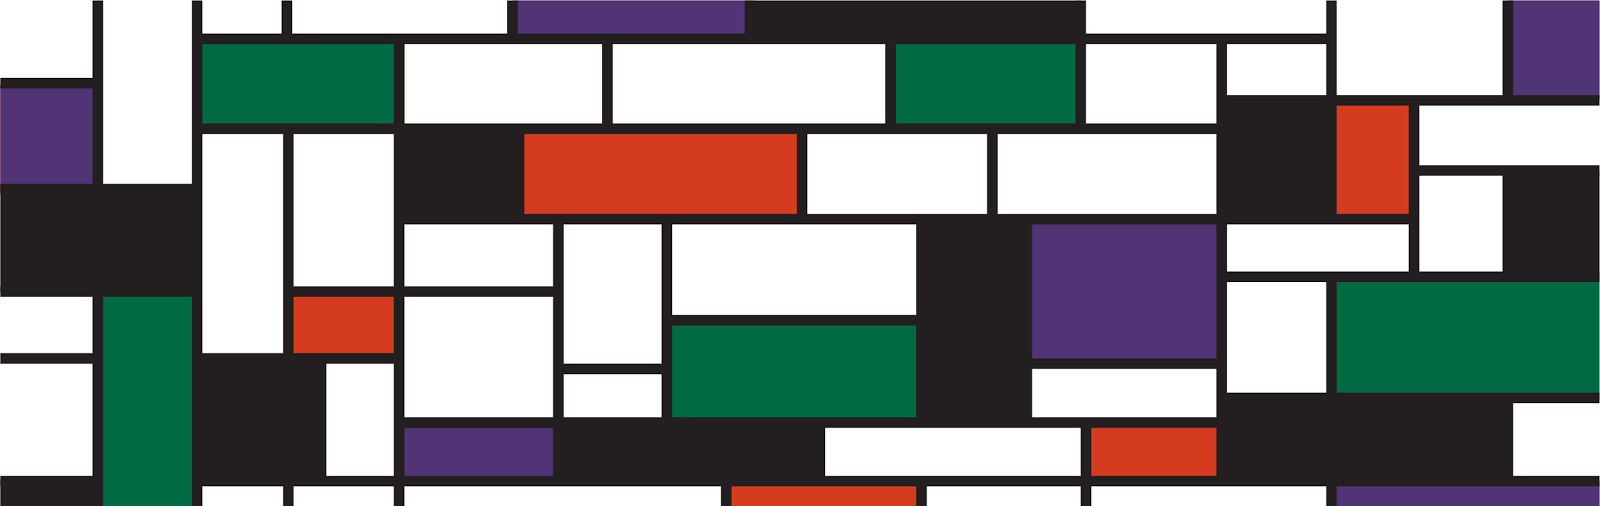 Mondrian-style wallpaper - Jen Haugan Animation & Illustration